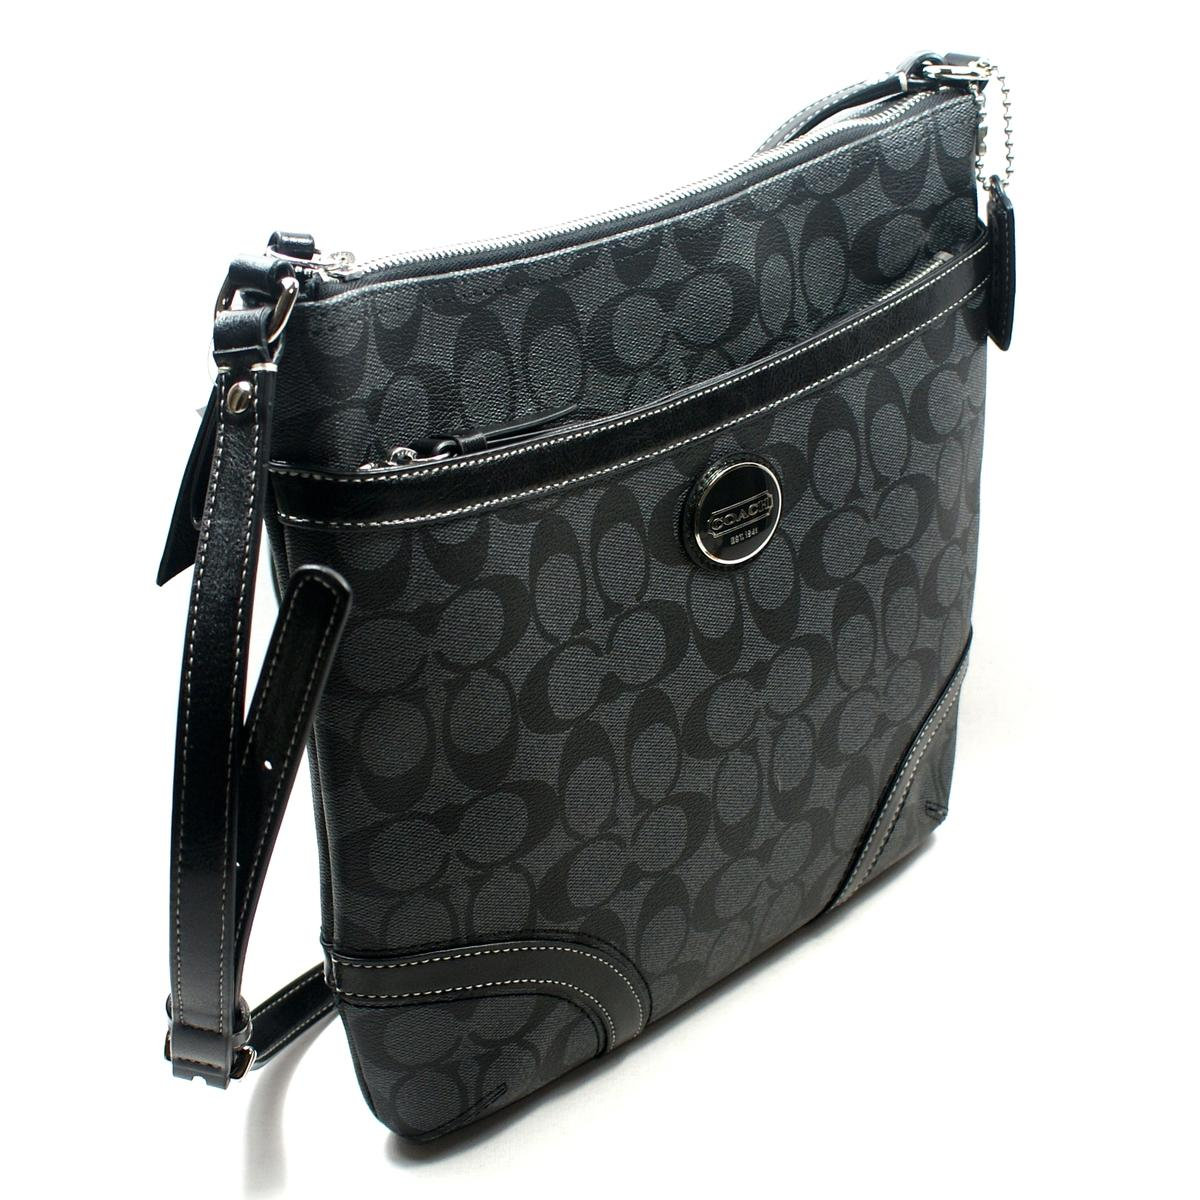 Coach Peyton Signature File Bag/ Cross Body Black #18926 : Coach 18926